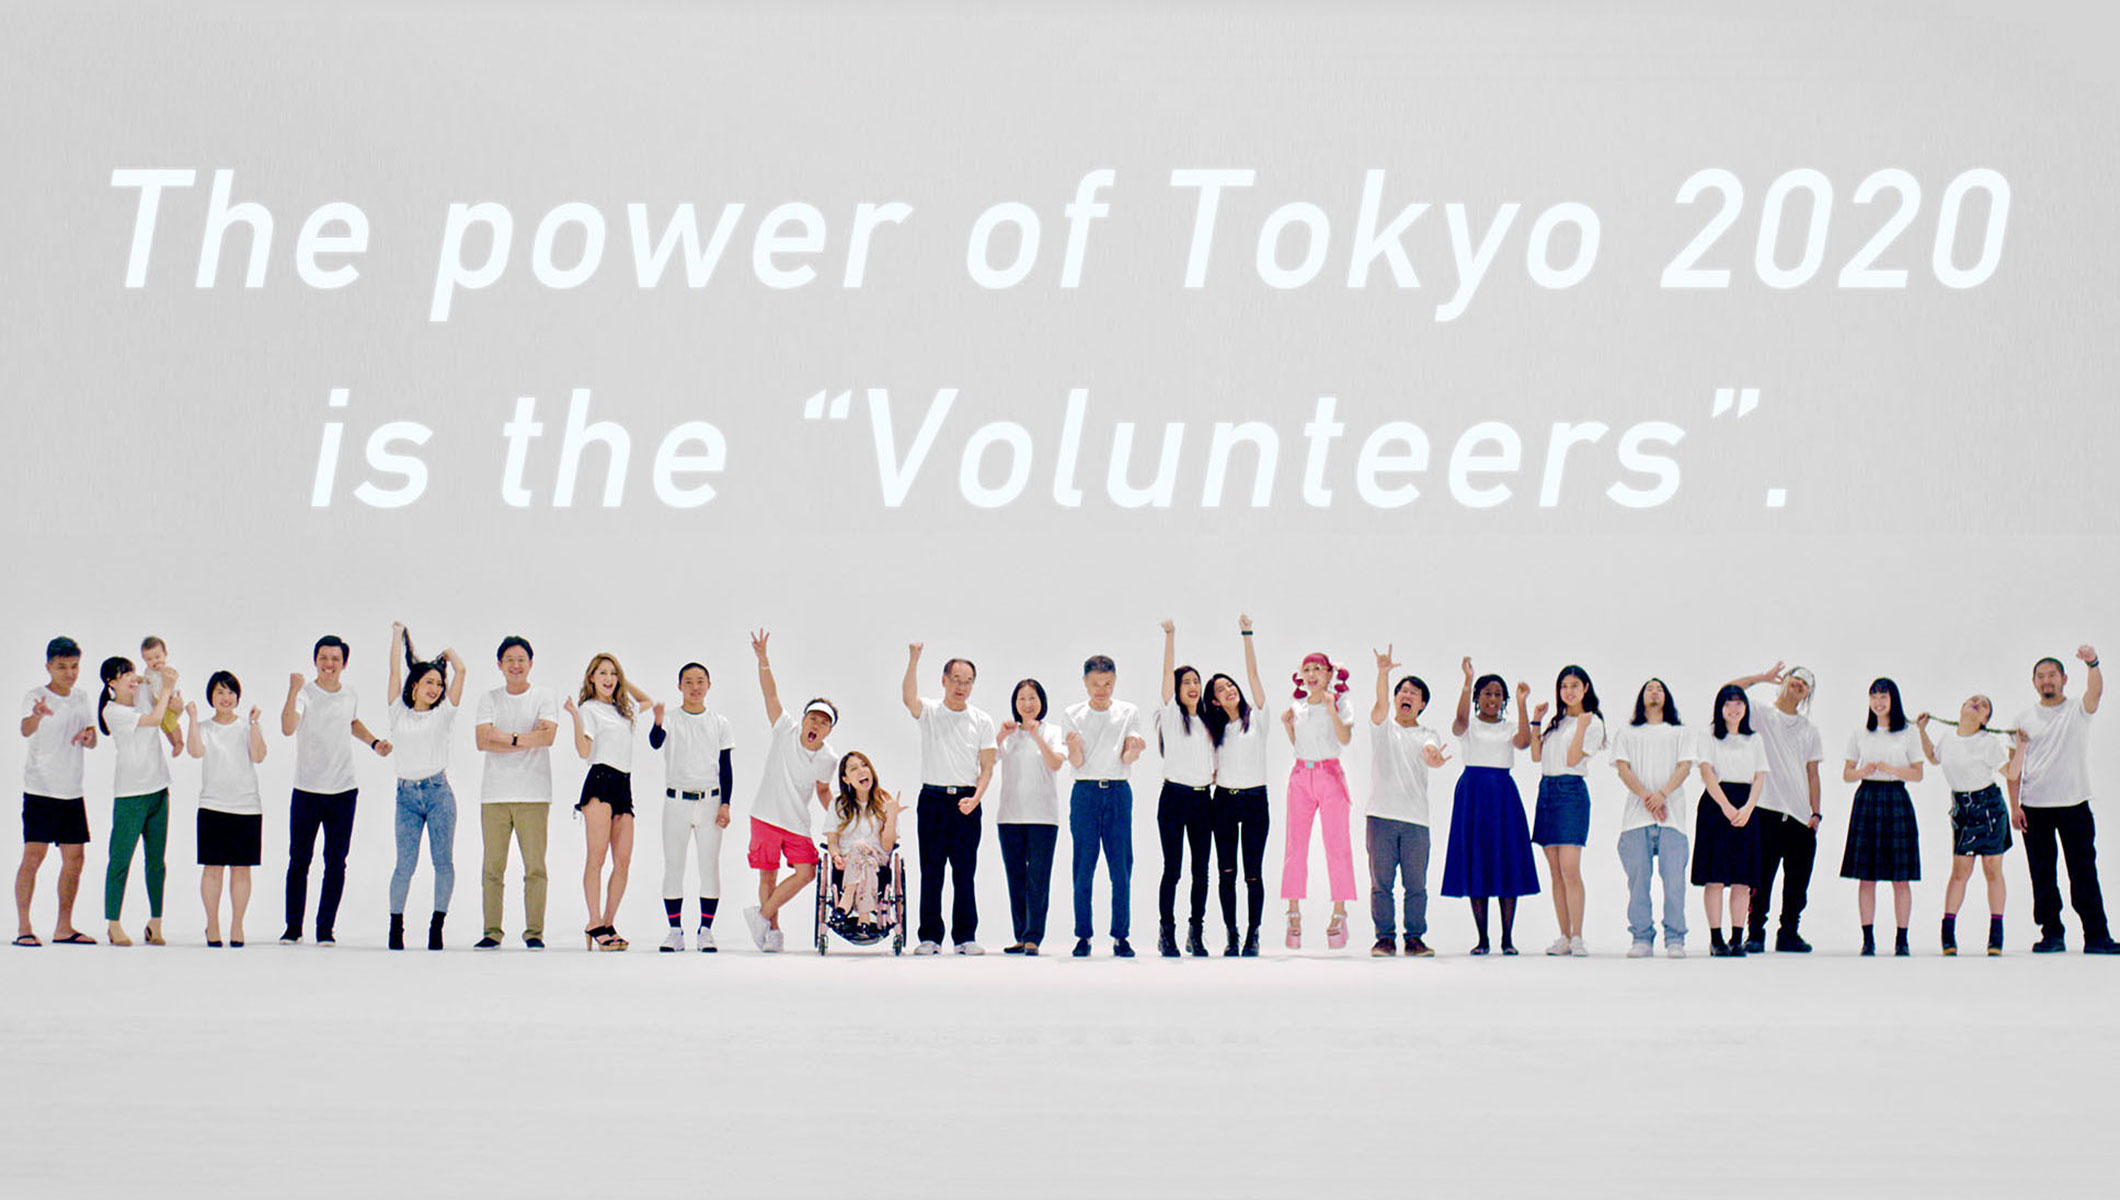 More than 200,000 applications received for Tokyo 2020 Volunteer Programme